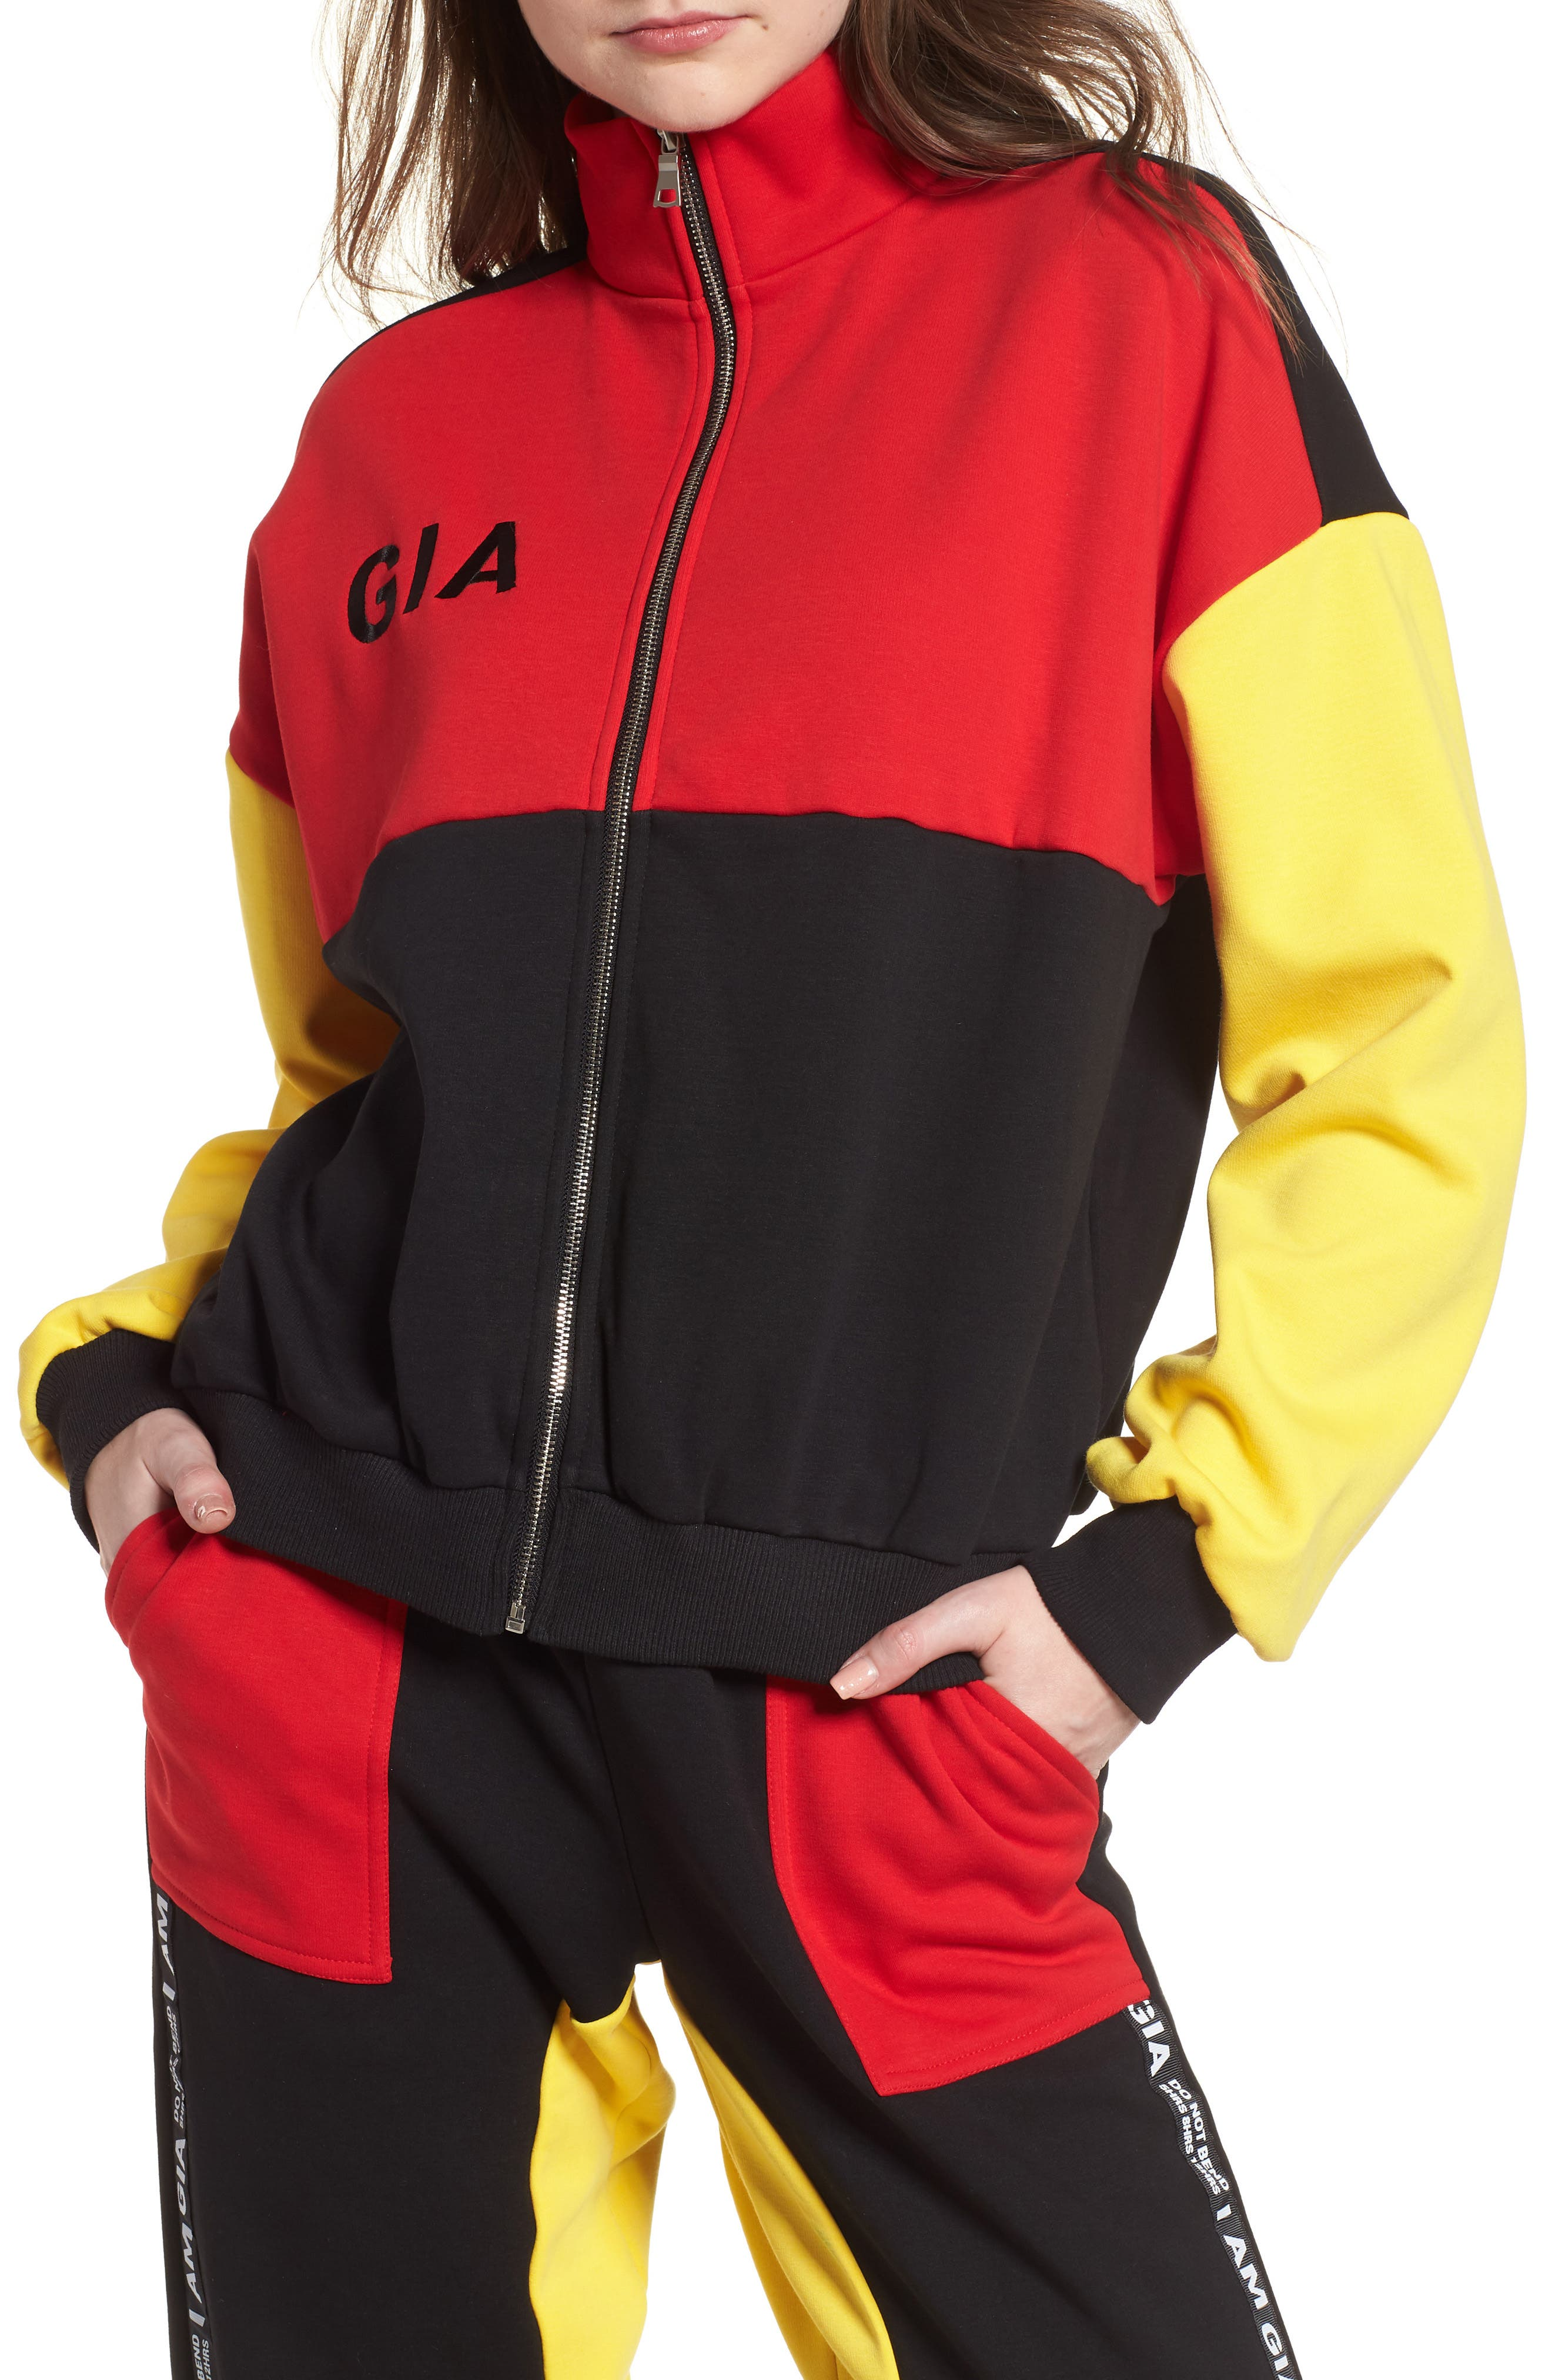 I.AM.GIA Blaster Jacket,                             Main thumbnail 1, color,                             Black